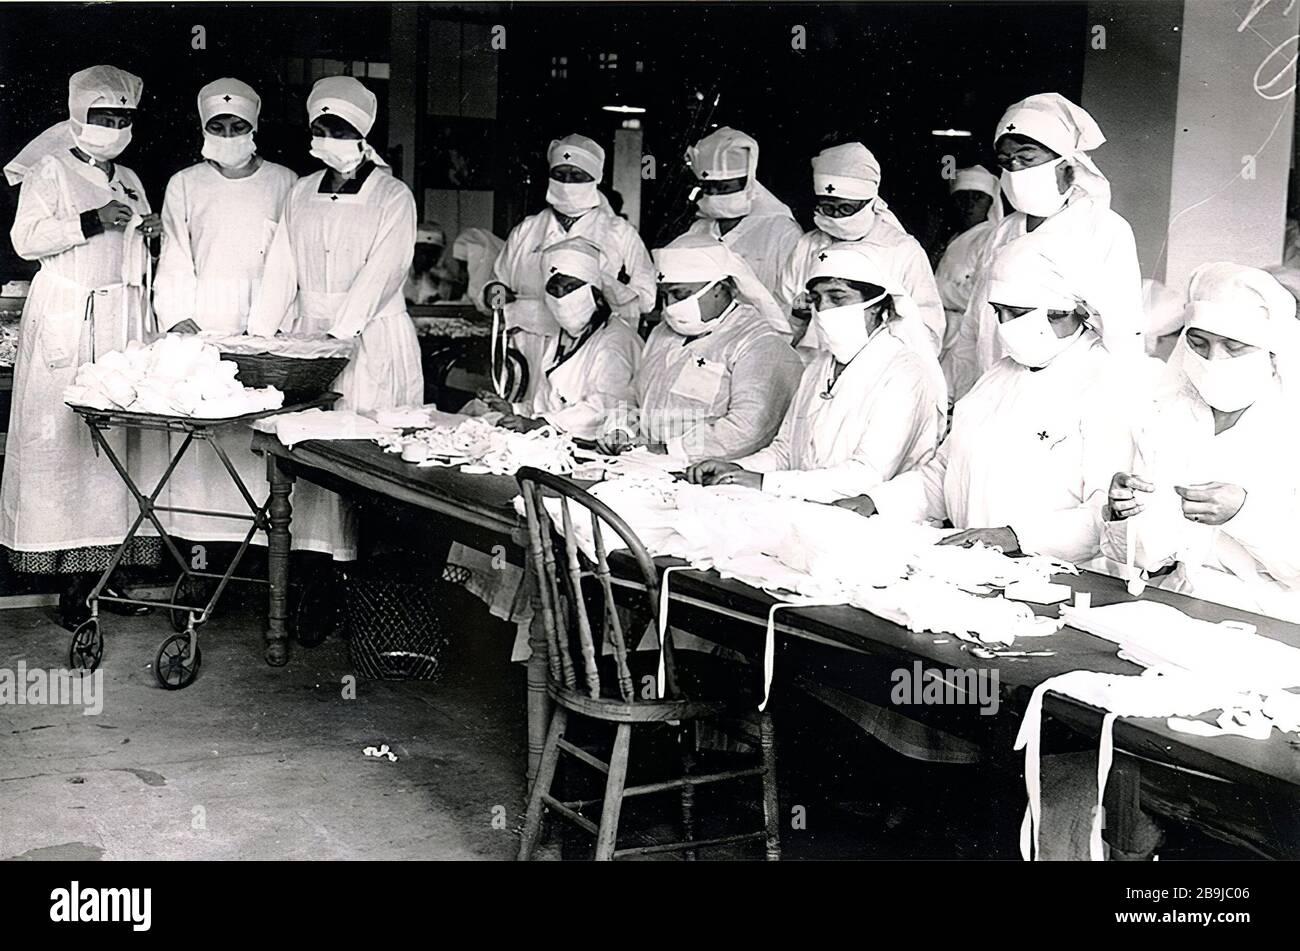 """Boston Red Cross volunteers assemble gauze influenza masks for use at hard-hit Camp Devens, Massachusetts. 1918-1919. An epidemic of """"Spanish Flu"""" spread around the world. At least 20 million died, although some estimates put the final toll at 50 million. Stock Photo"""